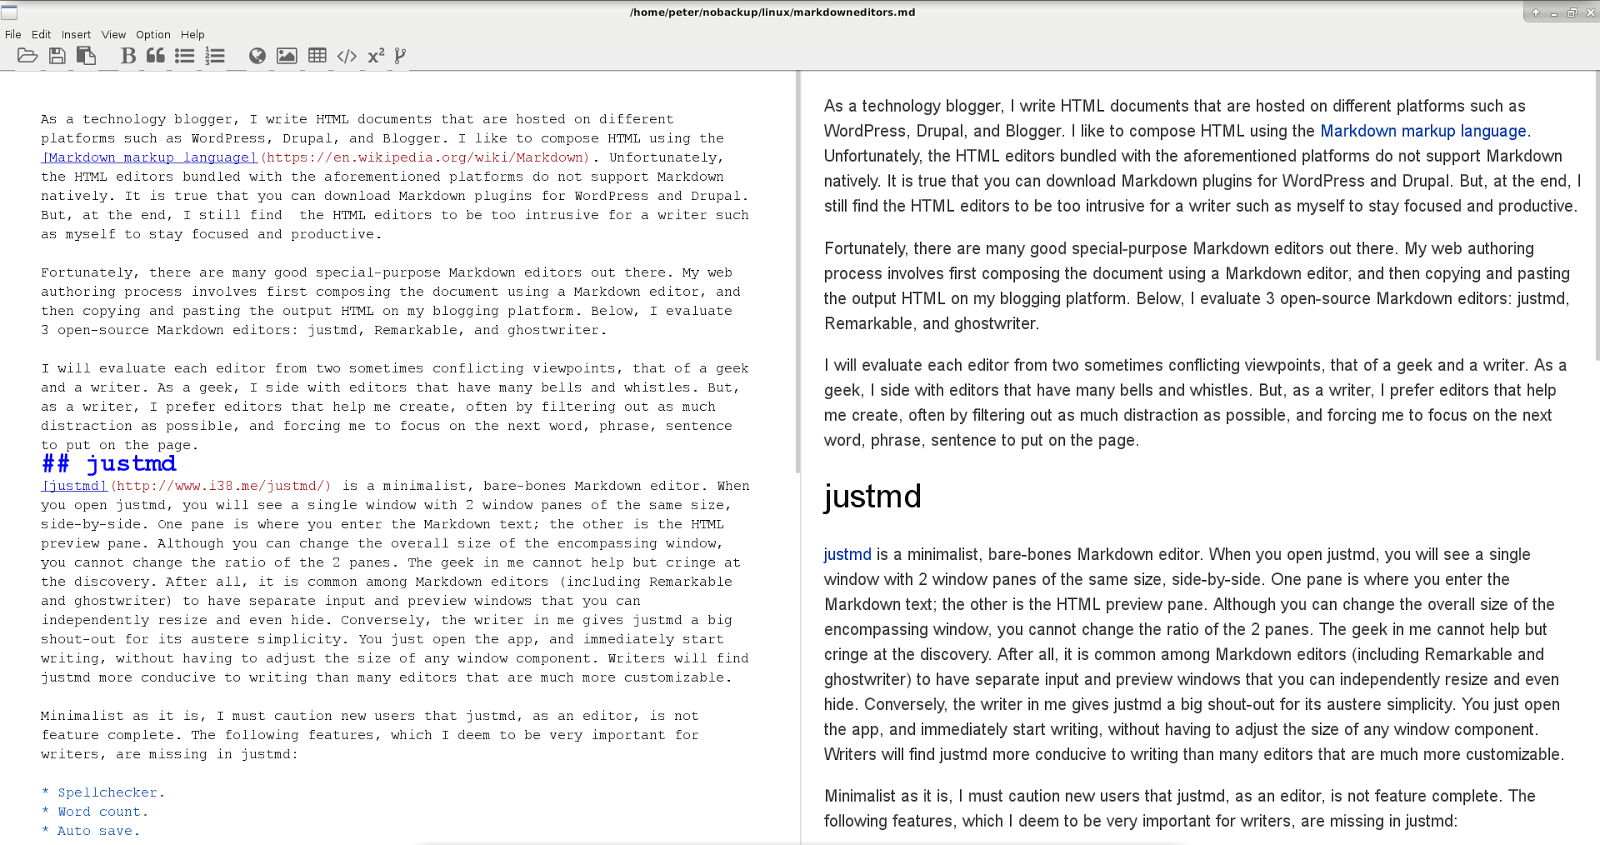 Linux Commando: A review of 3 best-of-breed Markdown editors